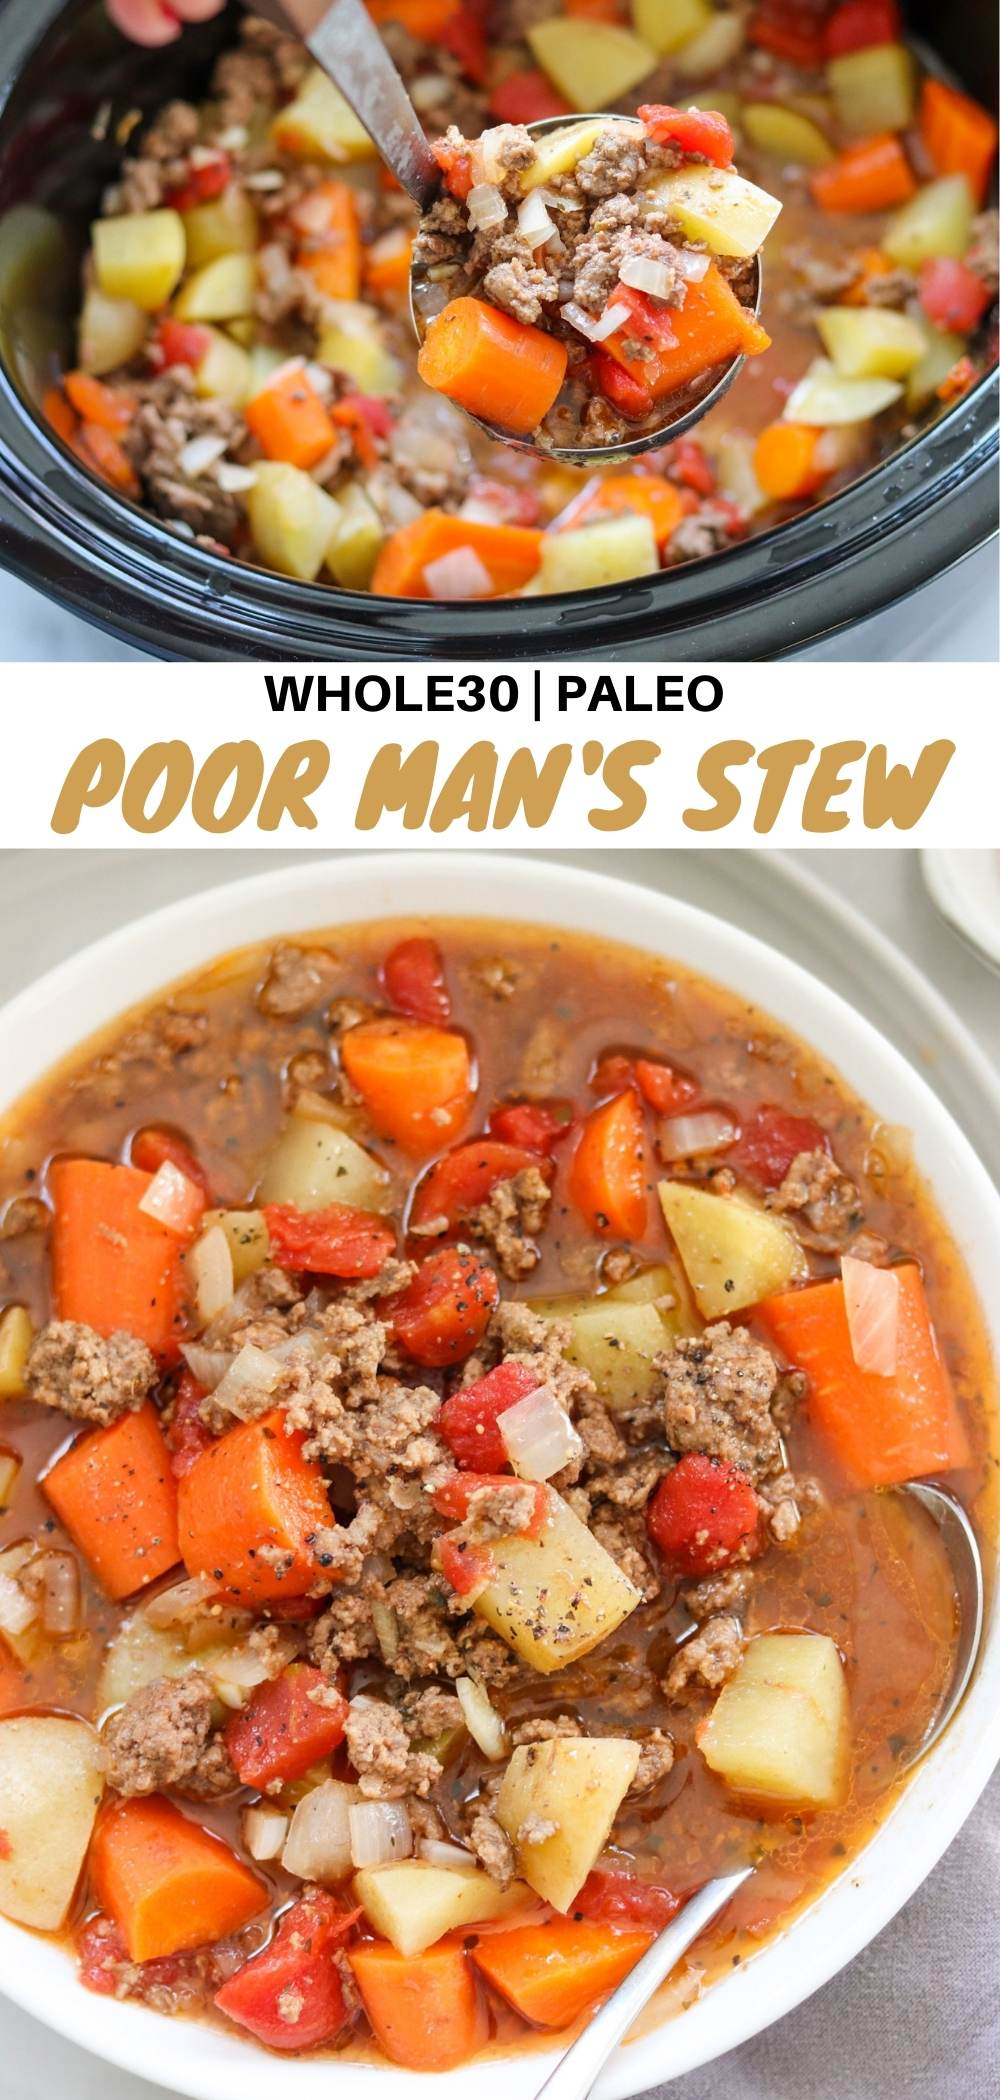 "Pinterest graphic with a close up of the cooked stew in a slow cooker and plated in a white bowl with the words, ""Whole30, Paleo Poor Man's Stew."""